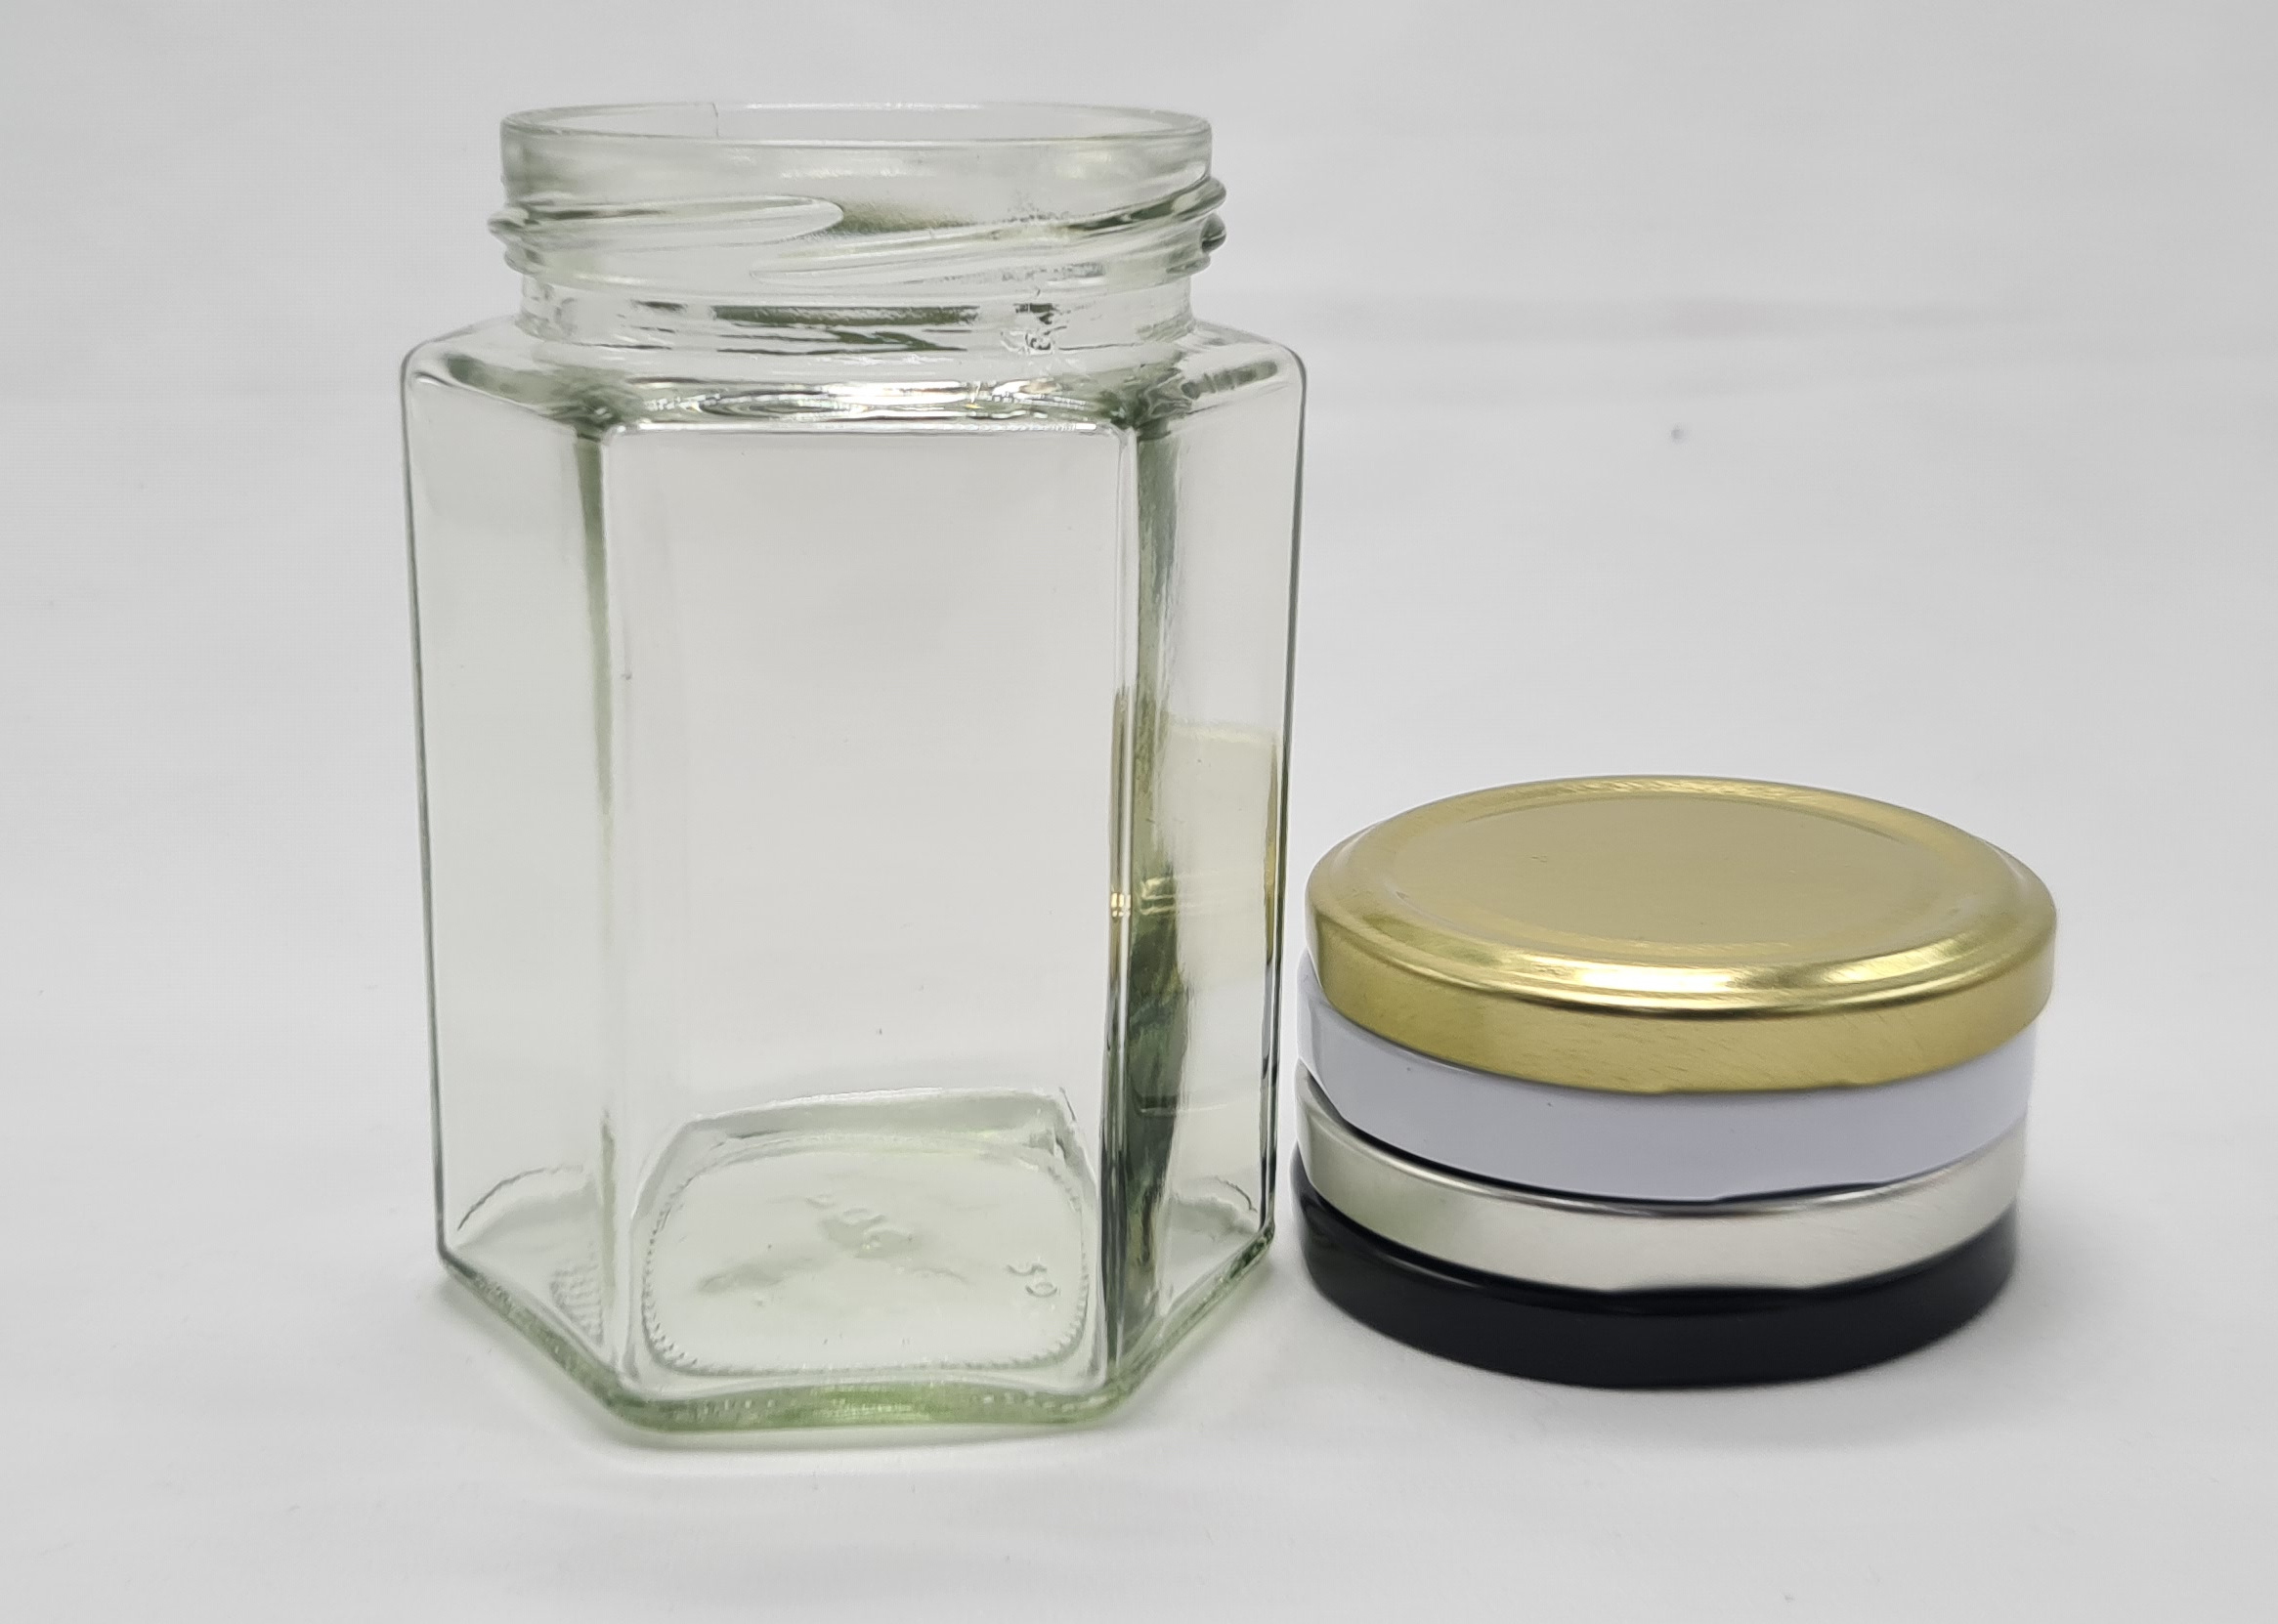 288ml (12oz) Hex Glass Jar (12 Per Pack) - Free Shipping